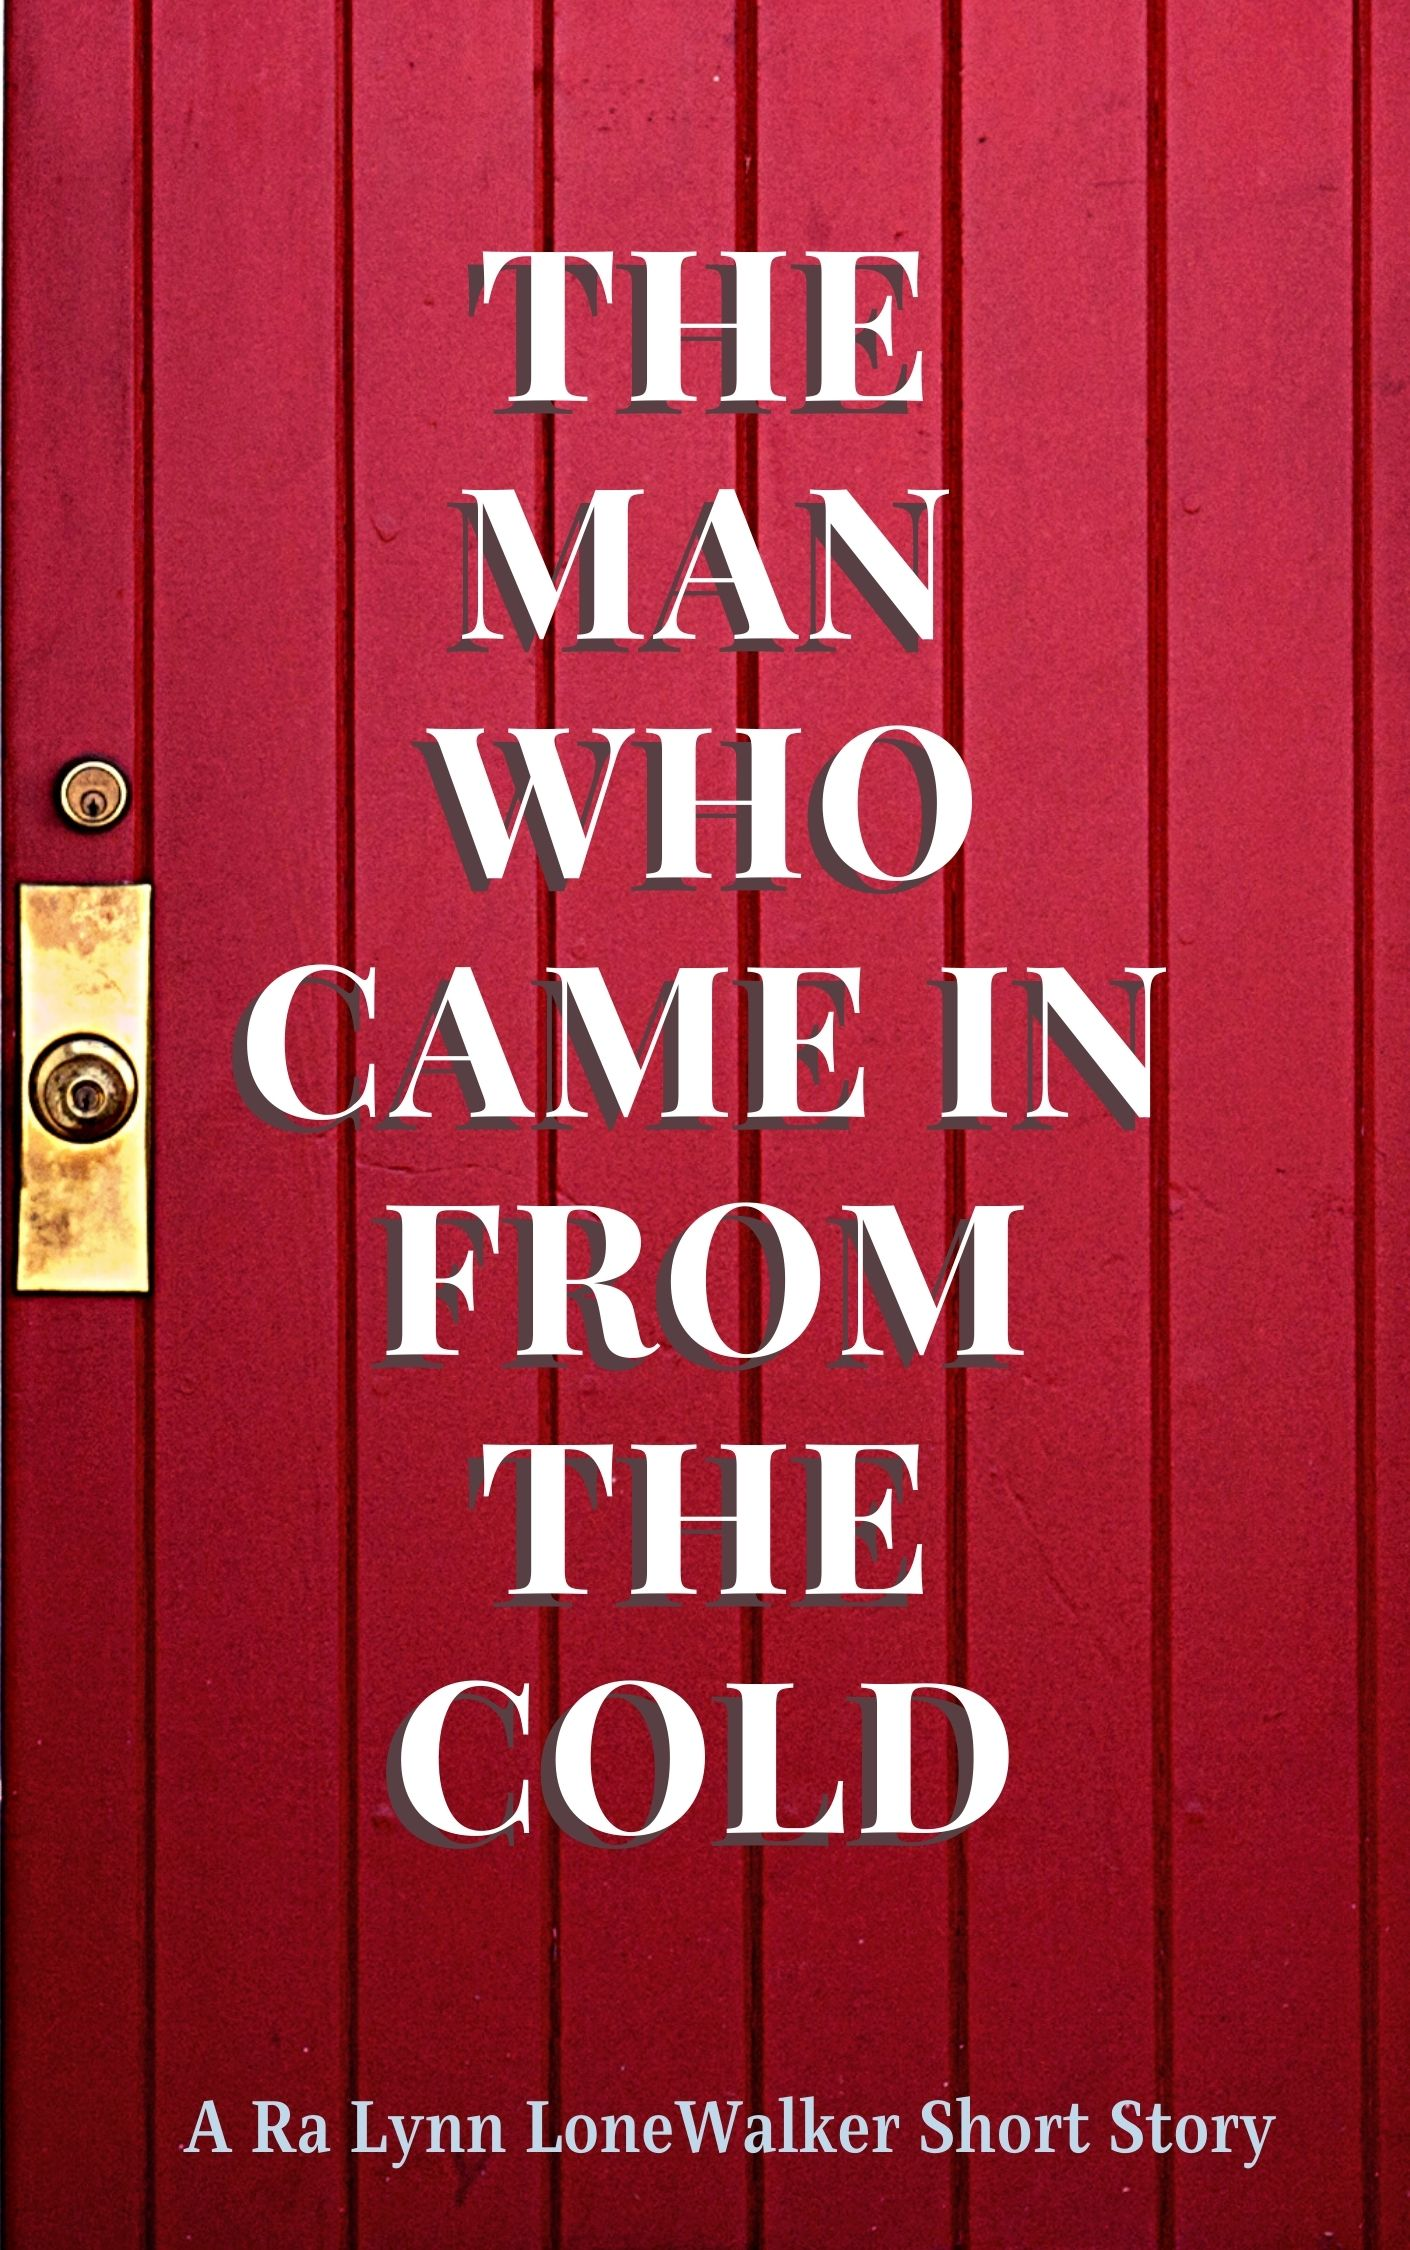 The Man Who Came in From the Cold (2)